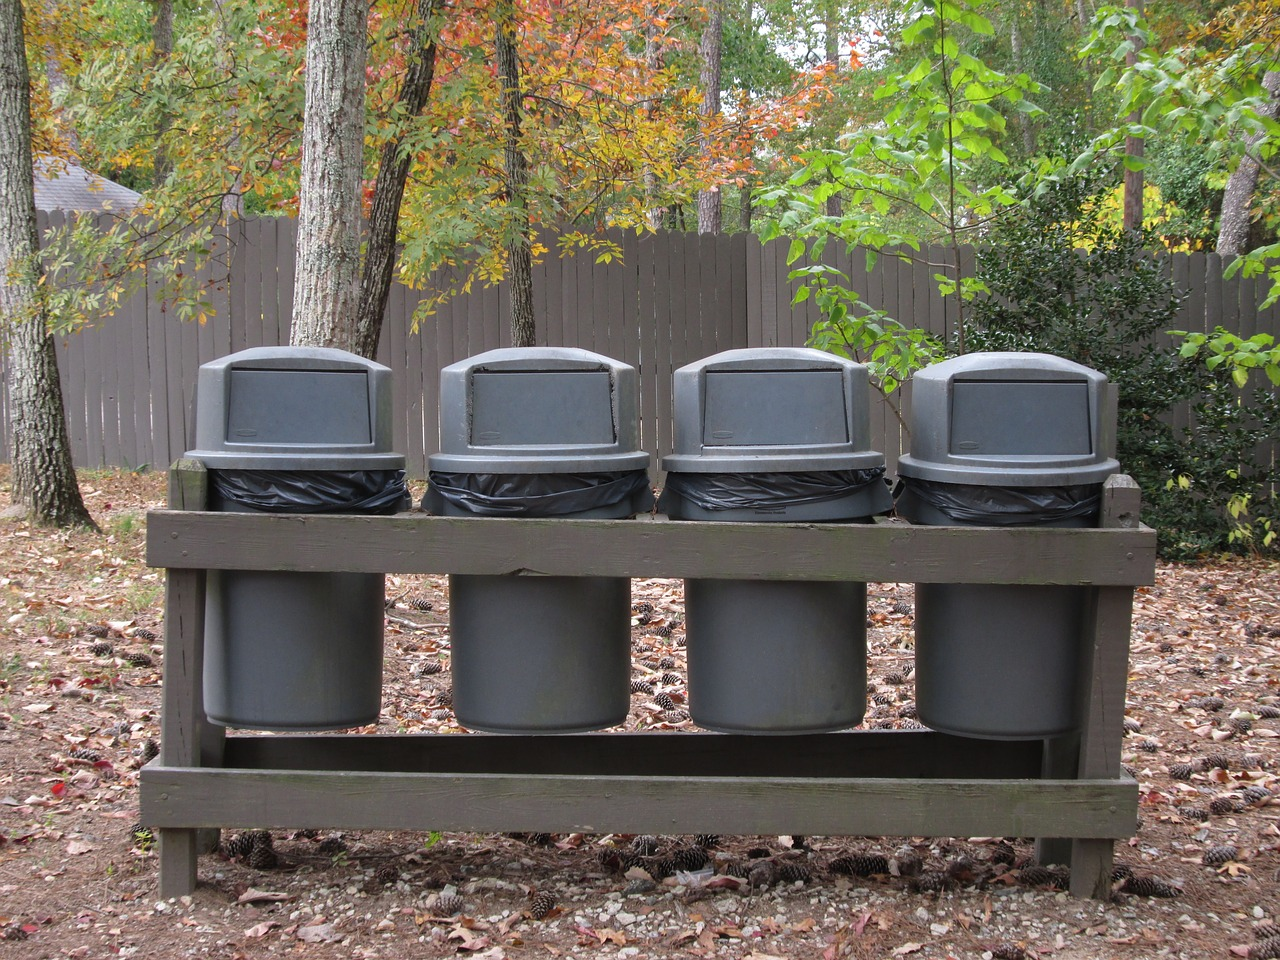 Row of Trash Cans